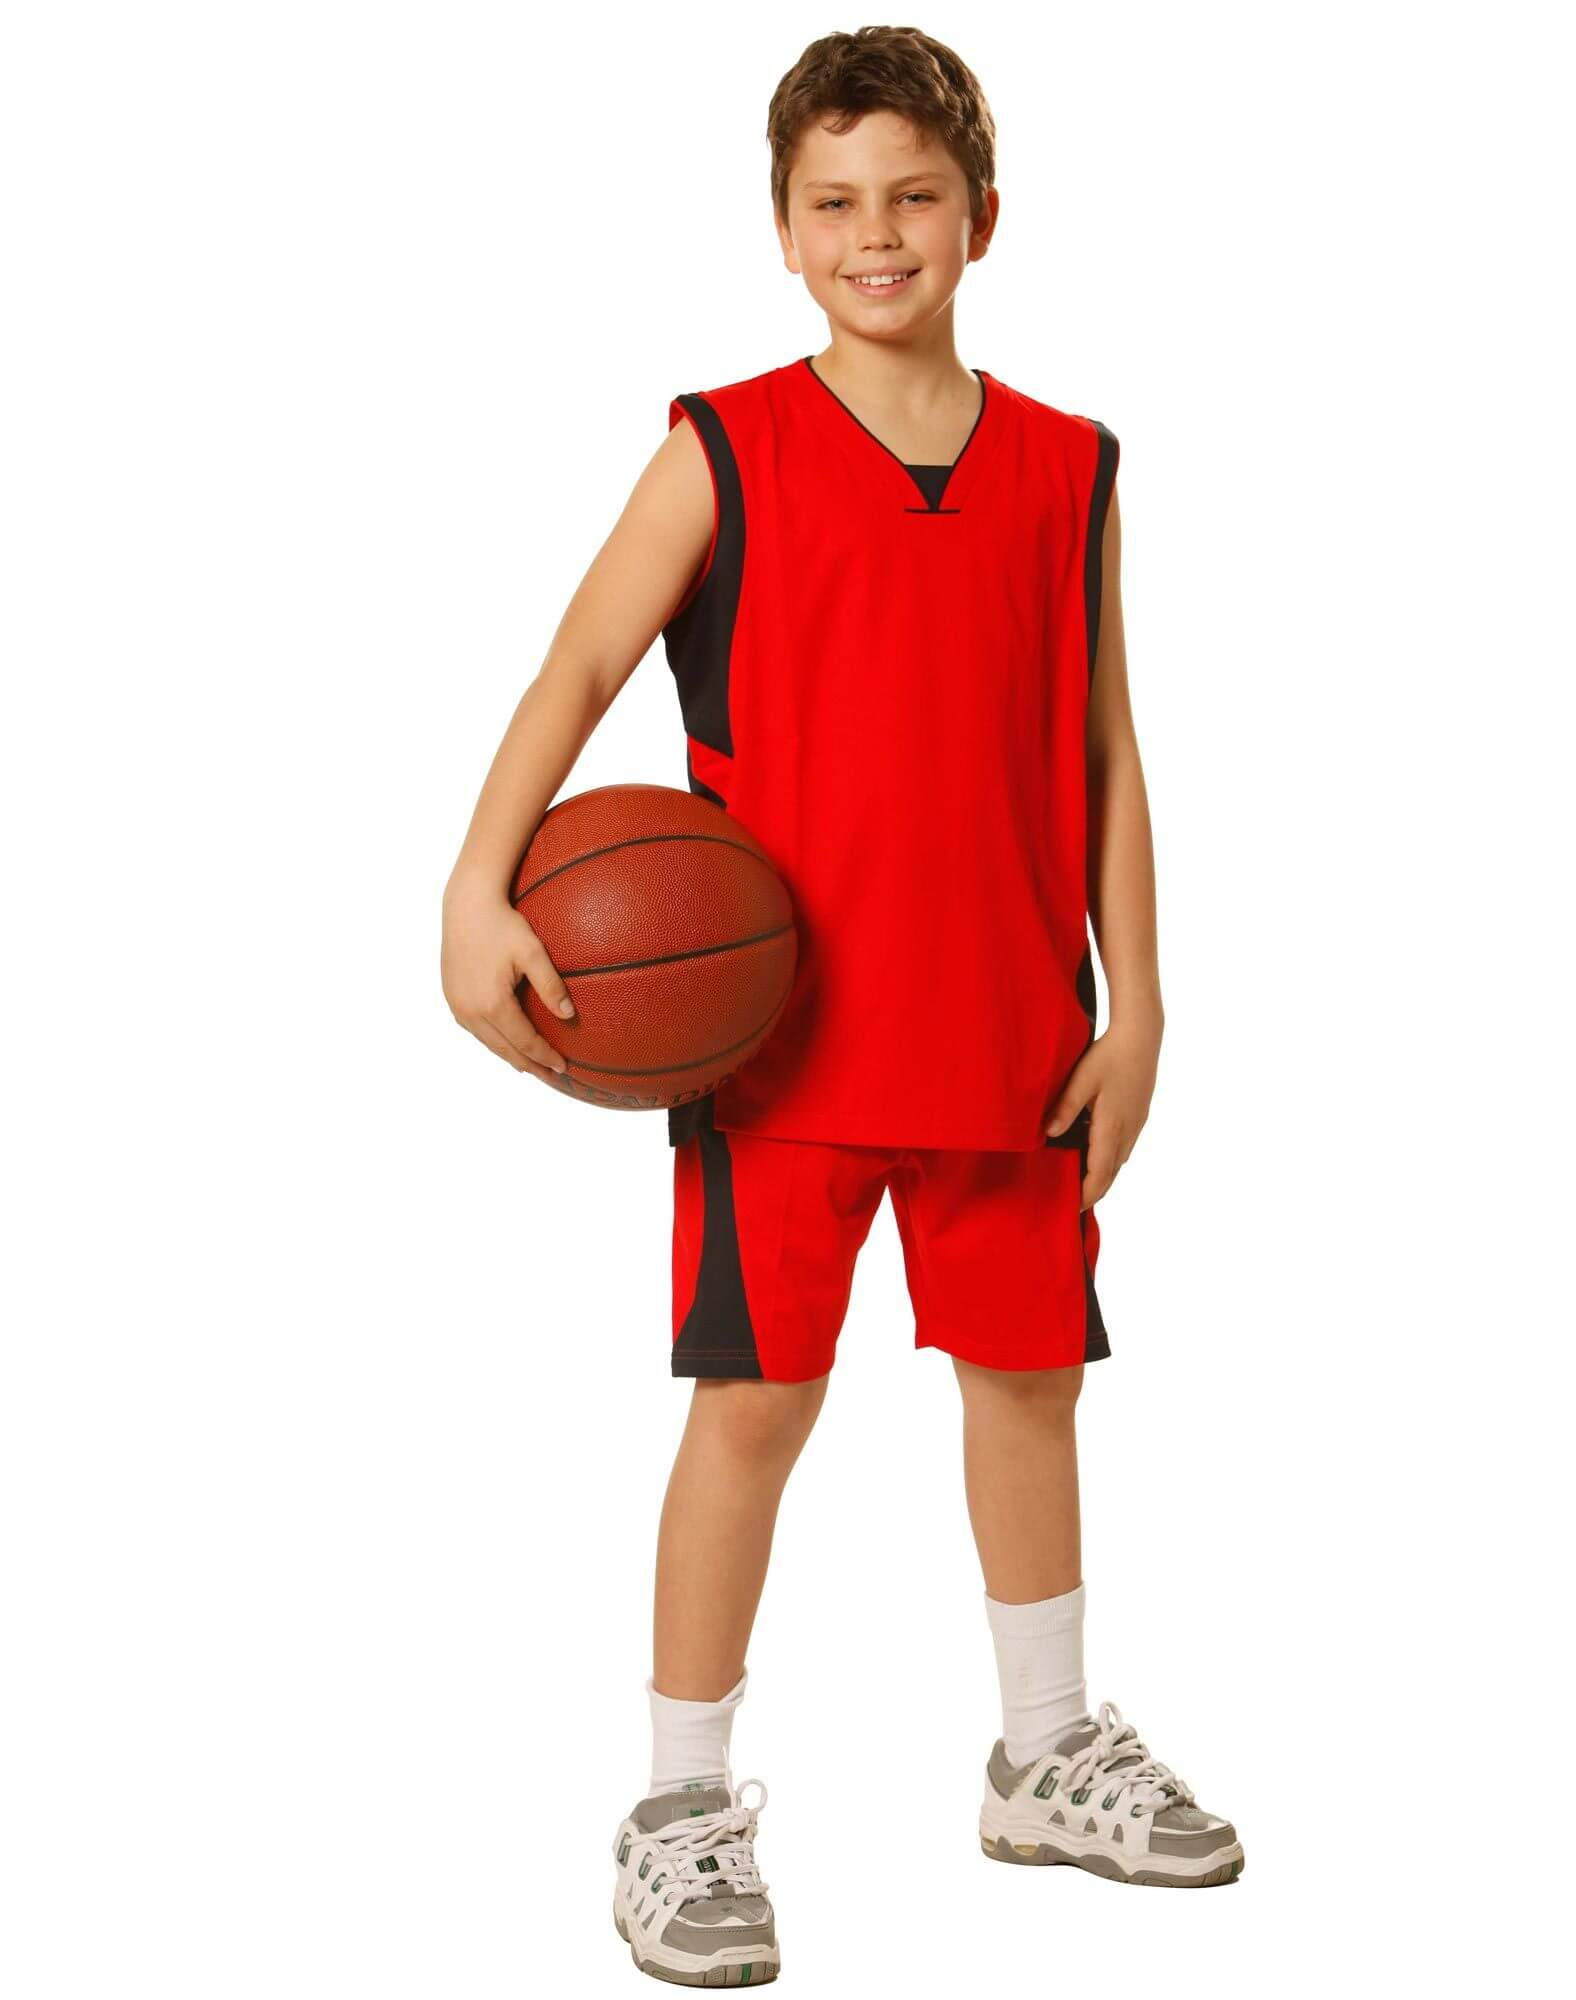 Kids Basketball Jerseys Manufacturers